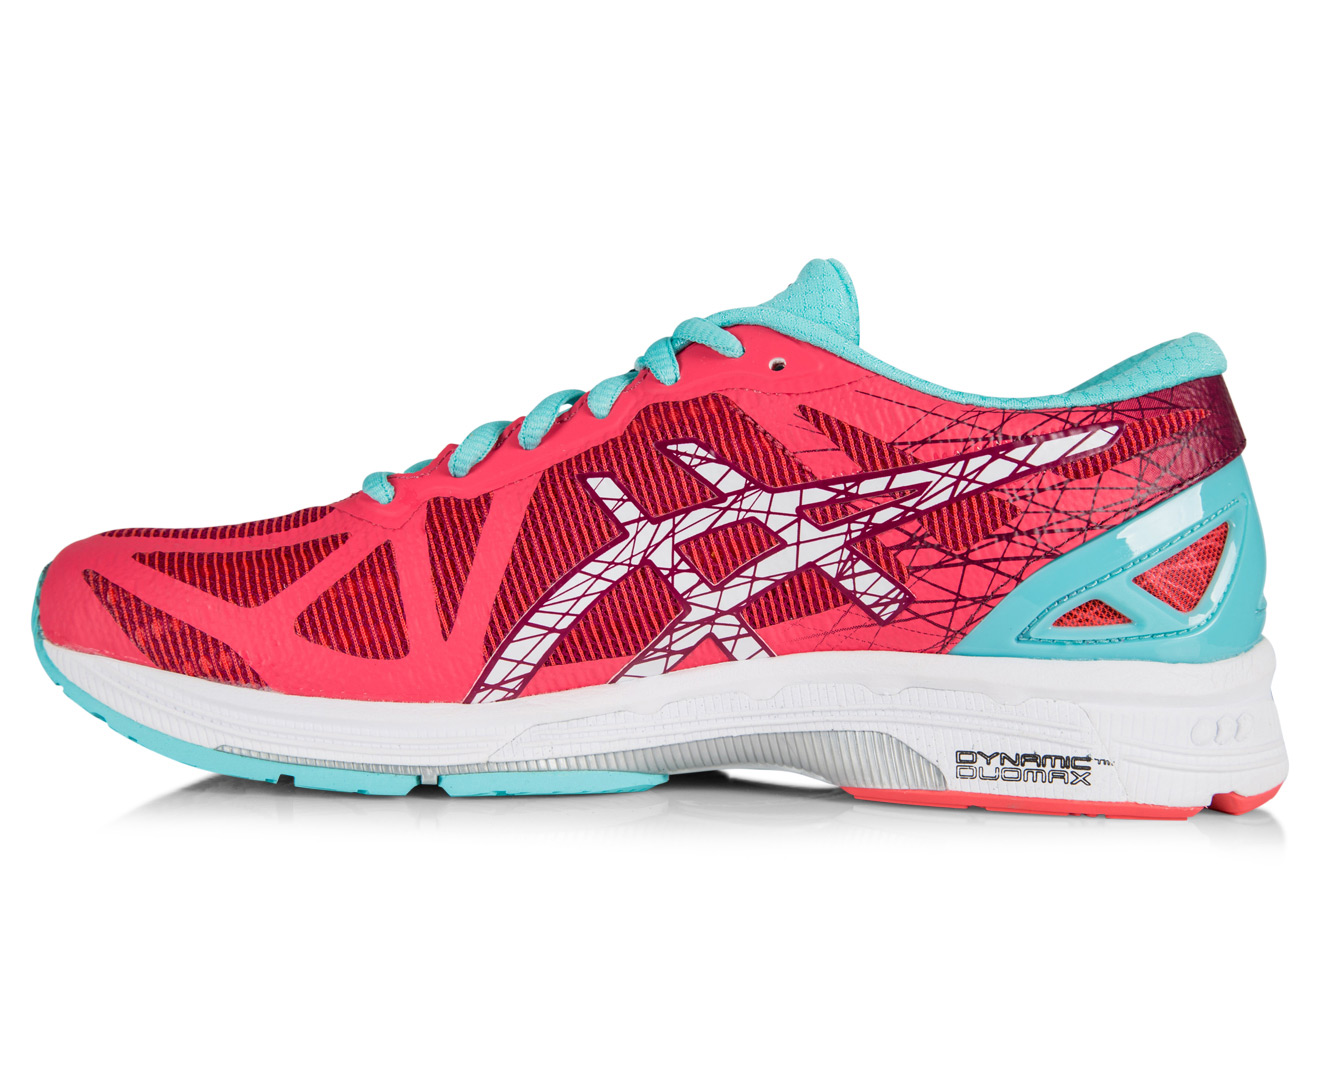 d8afc9f909bc ASICS Women s GEL-DS Trainer 21 Shoe - Diva Pink White Turquoise